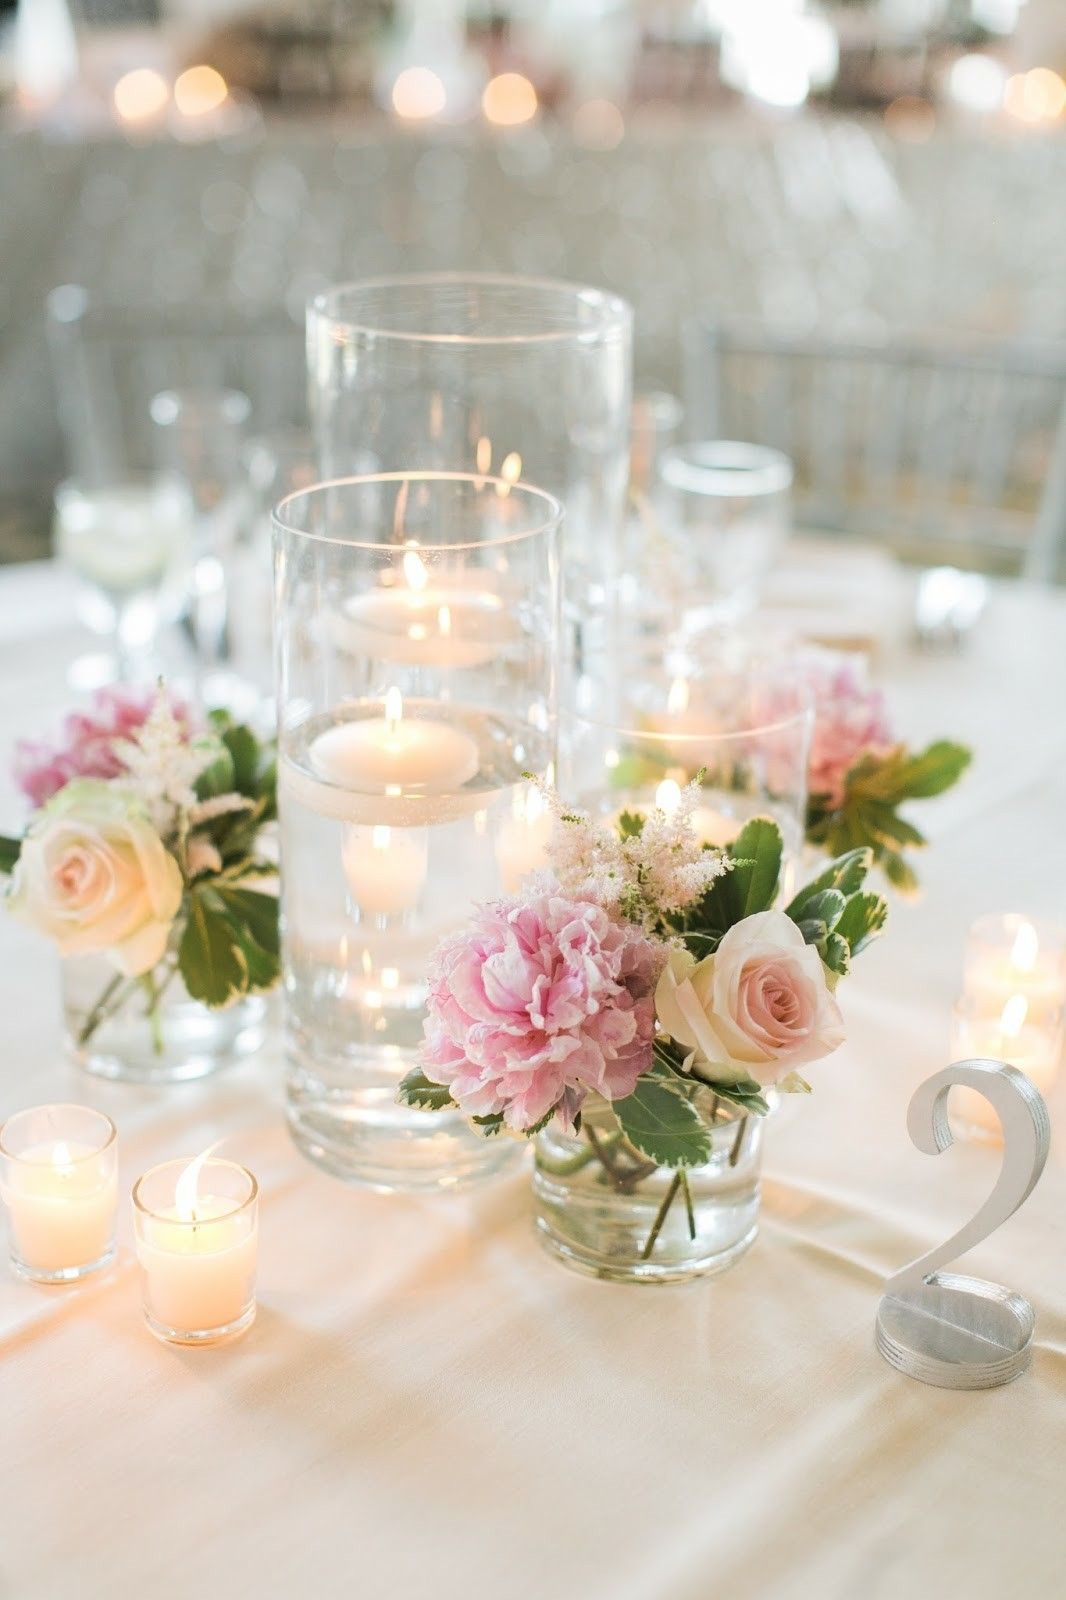 Pin by Rose Malley on Wedding Ideas | Pinterest | Reception and Weddings